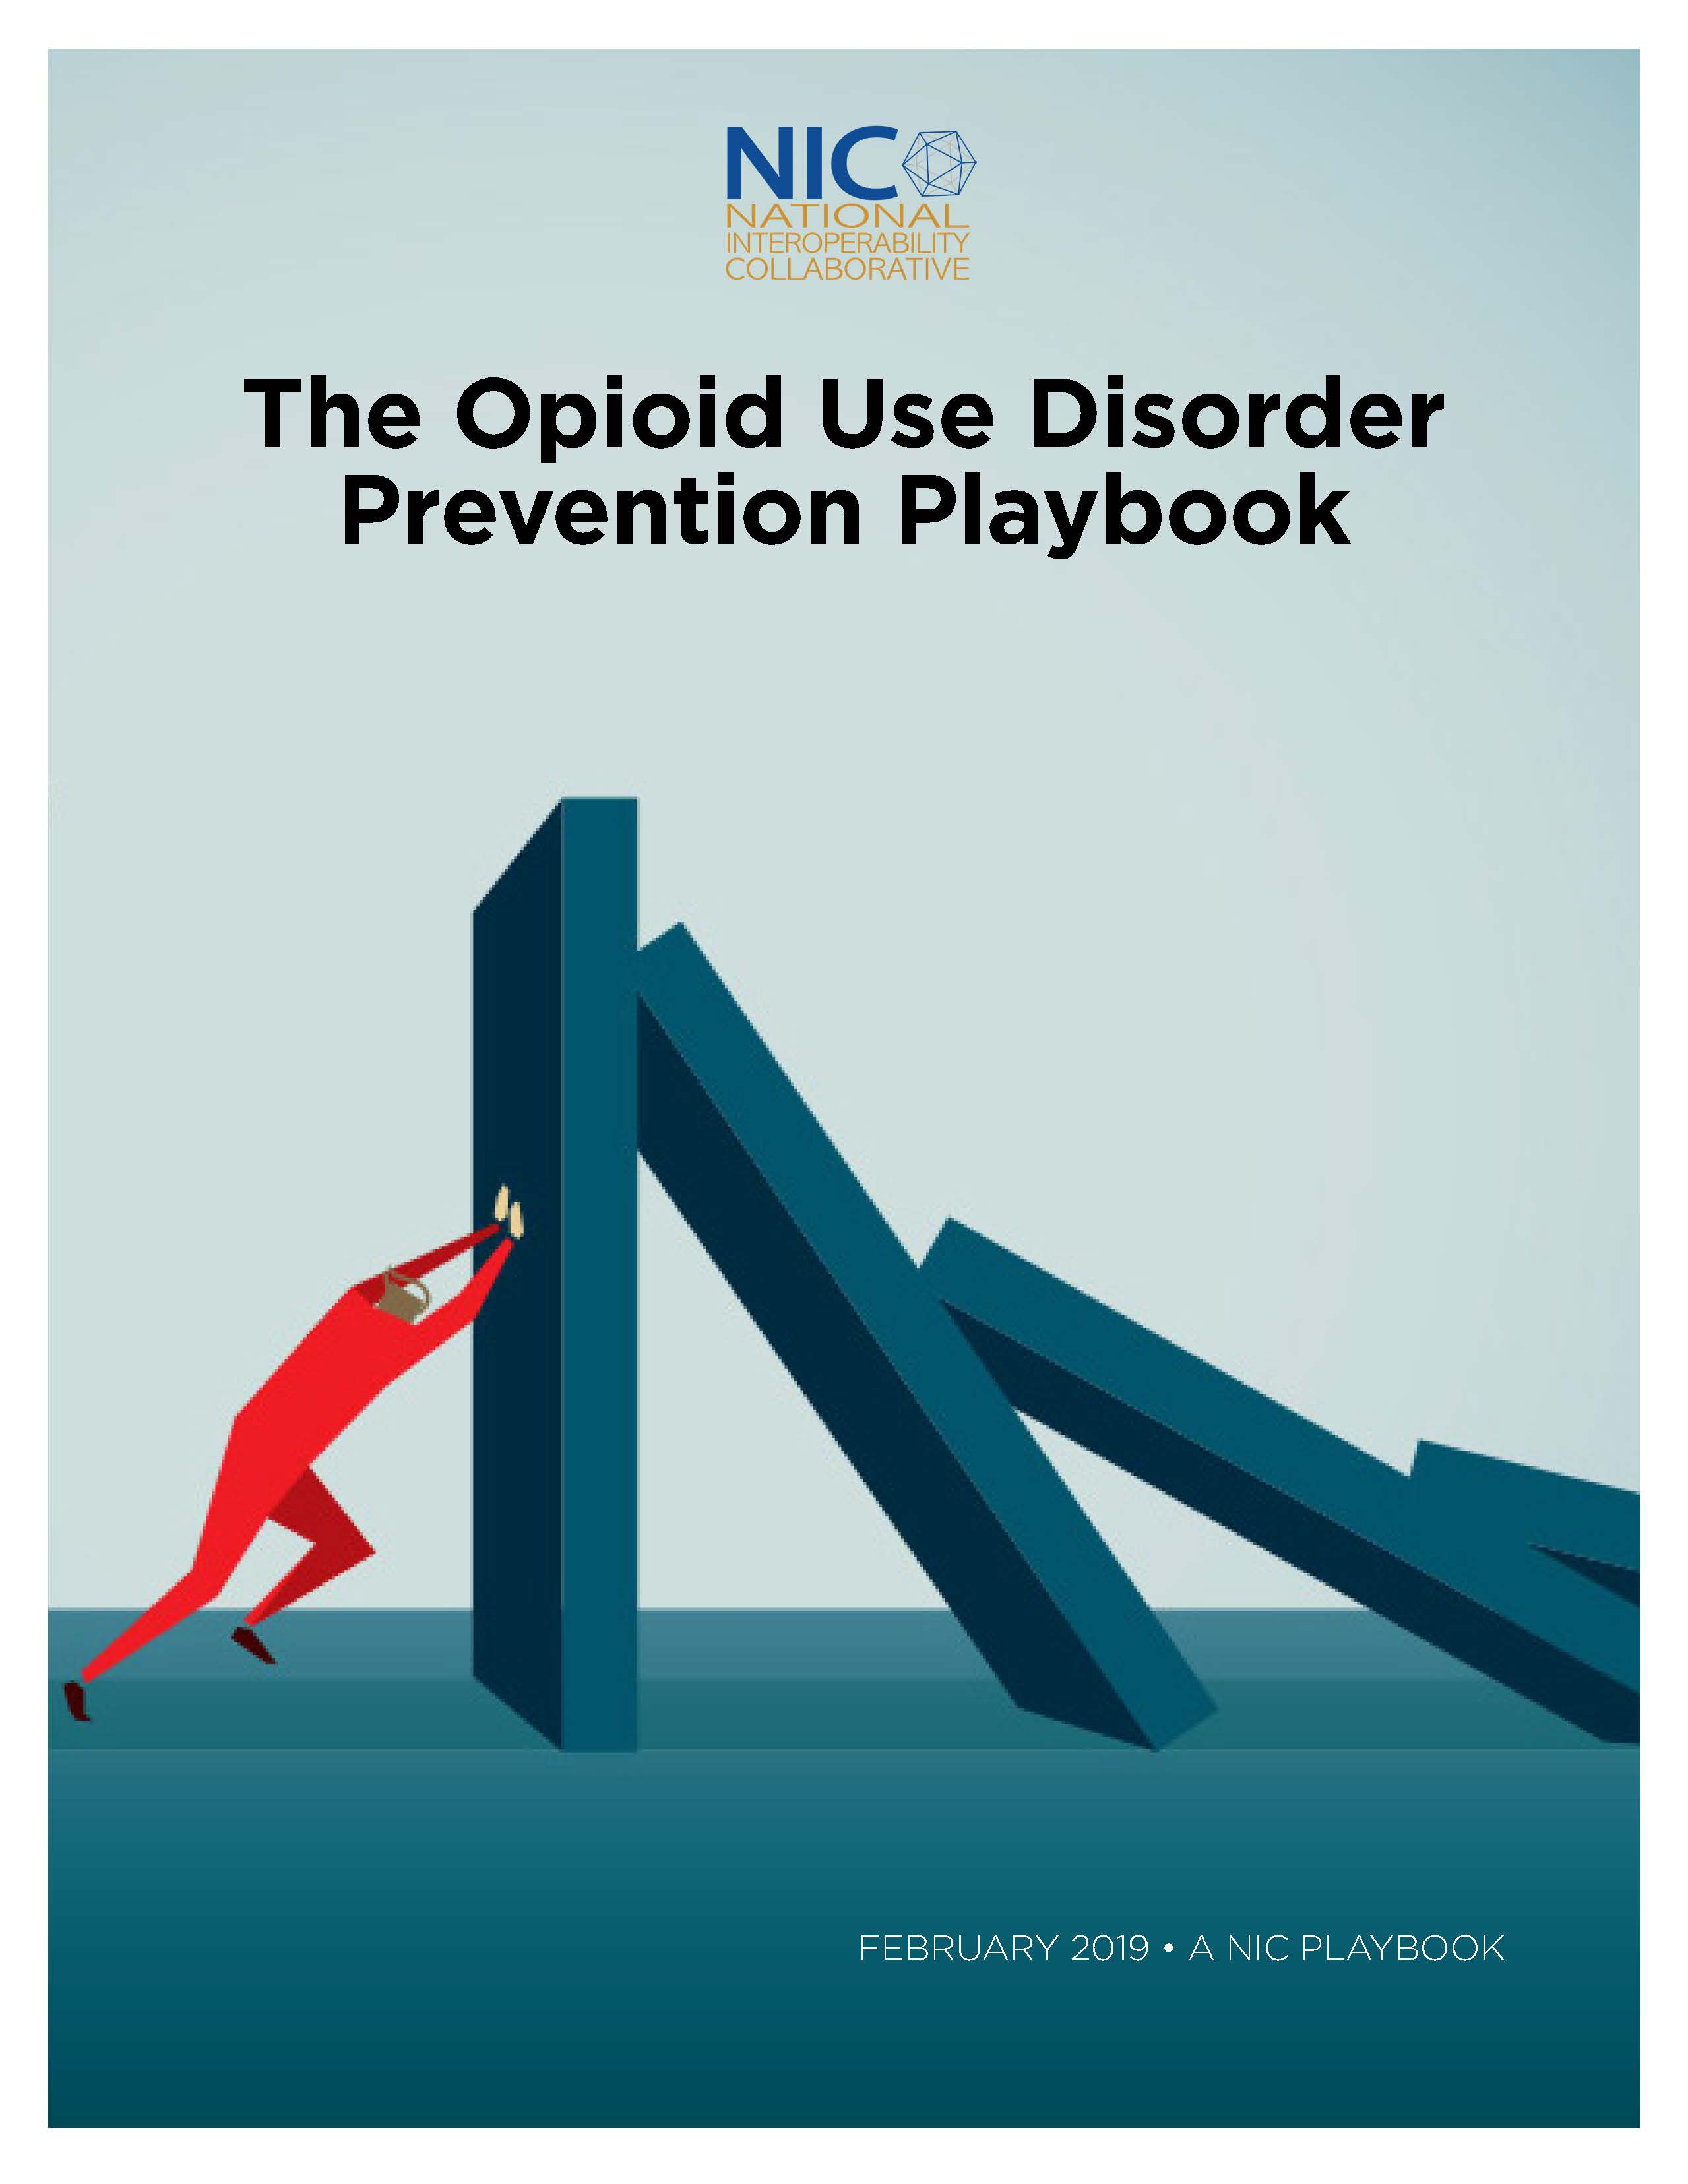 The NIC Opioid Use Disorder Prevention Playbook